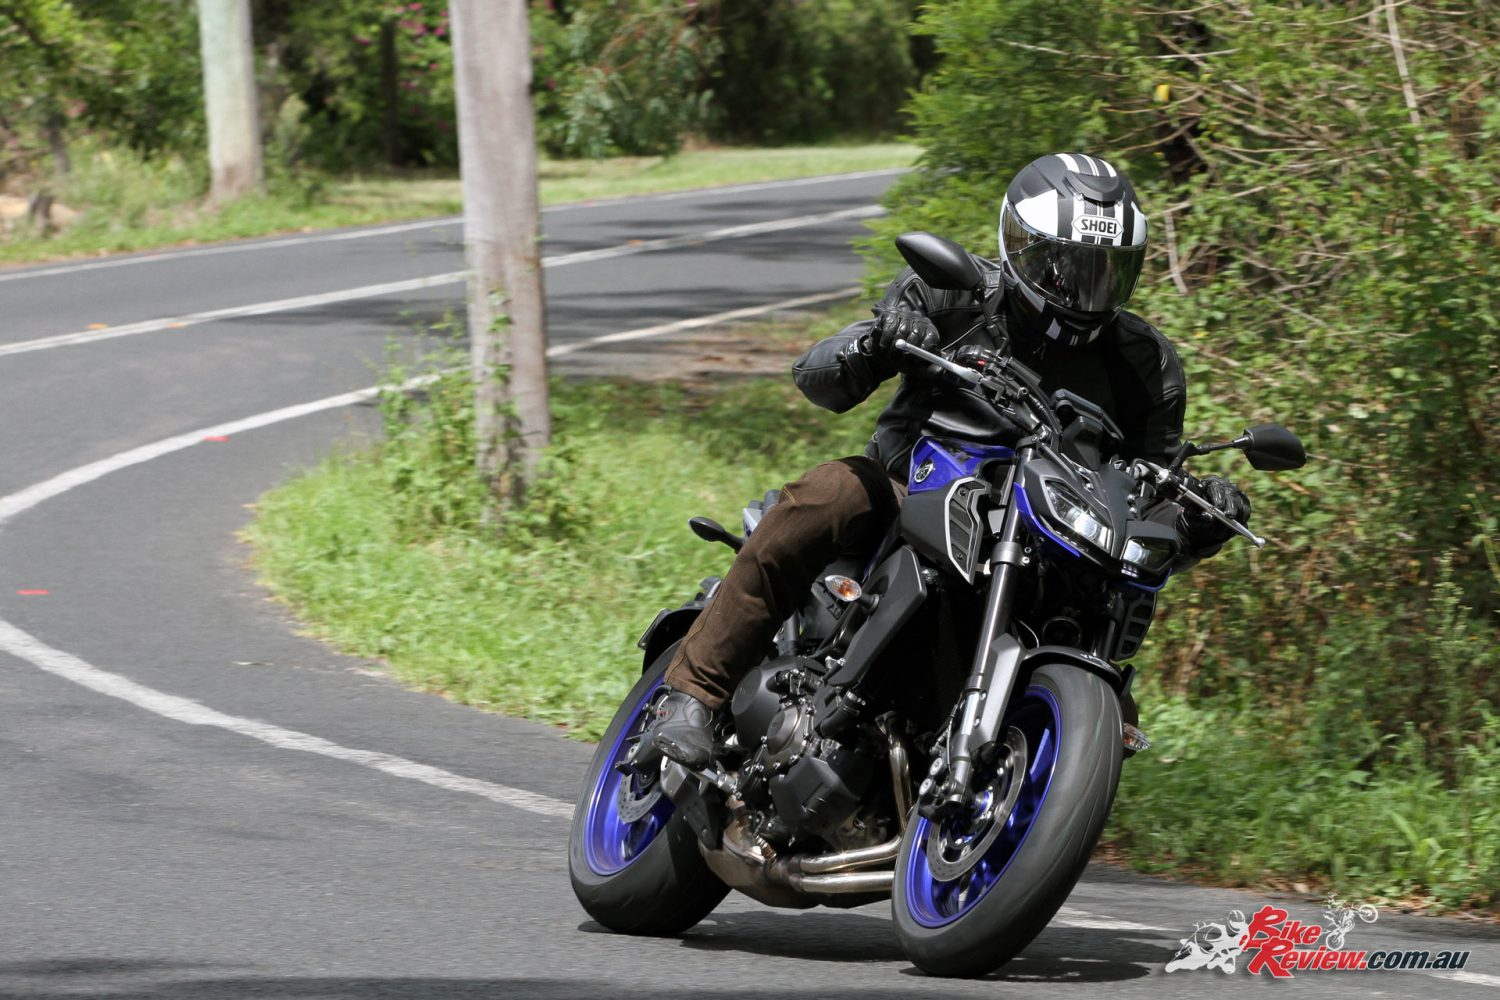 Review: 2017 Yamaha MT-09 - Bike Review